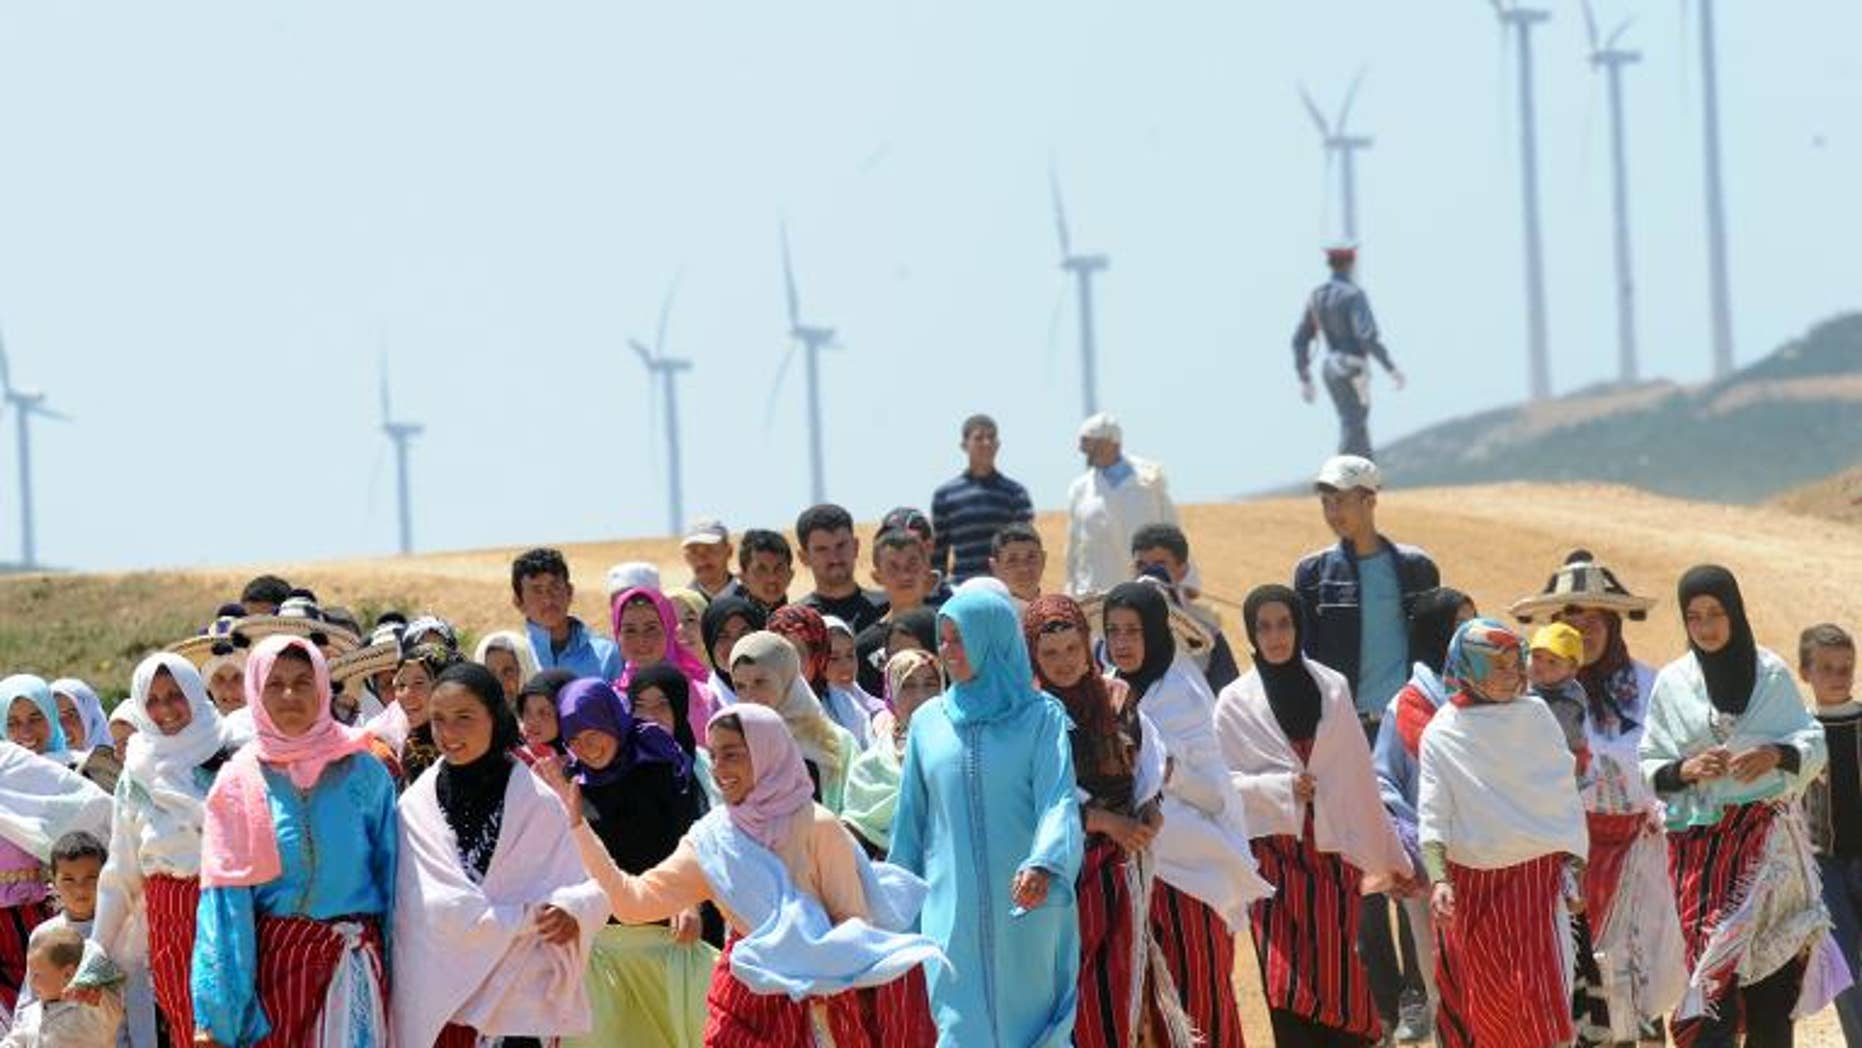 Villagers of Dahr Saadane walk in front of the wind farm on June 28, 2010 in Tangiers.